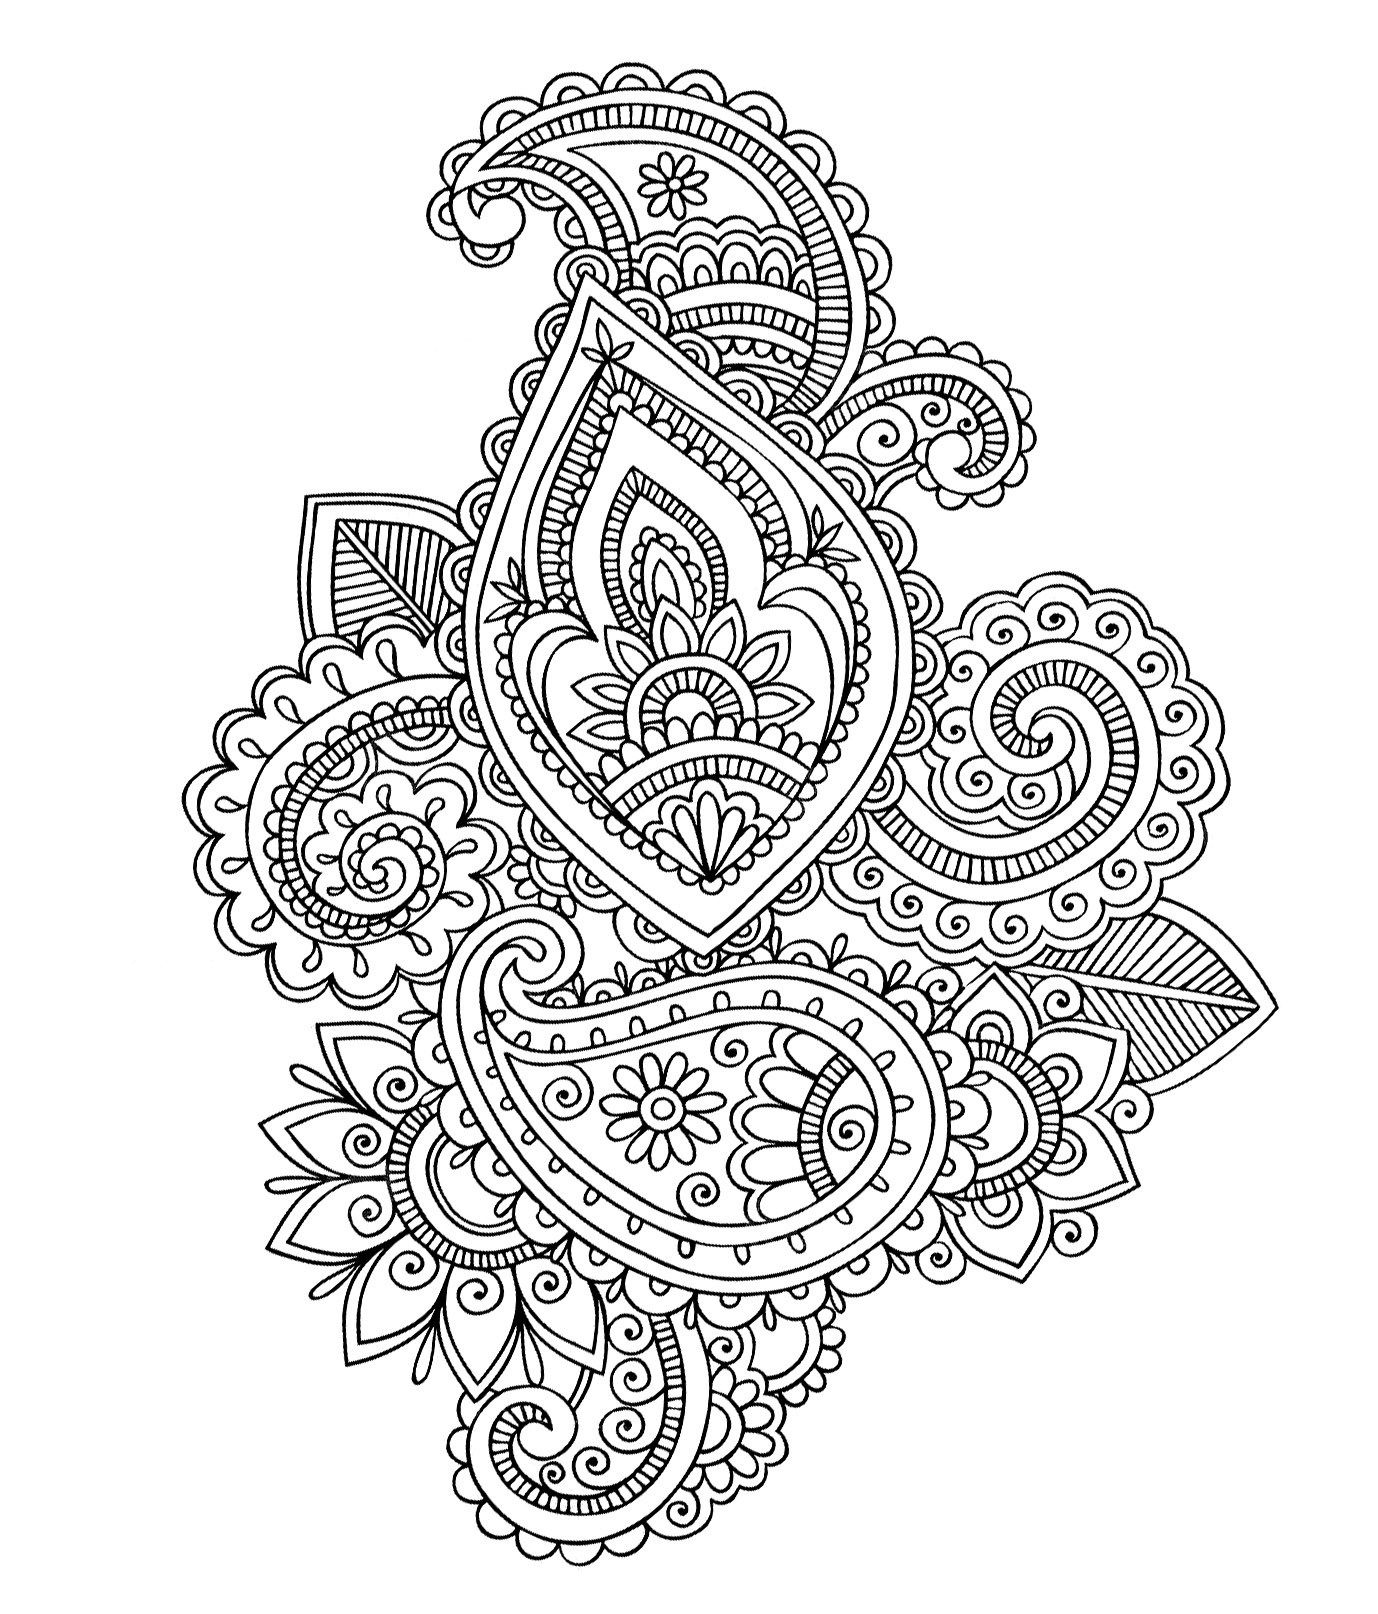 Adult Coloring Pages: Paisley 3 | Adult Coloring Pages | Pinterest ...